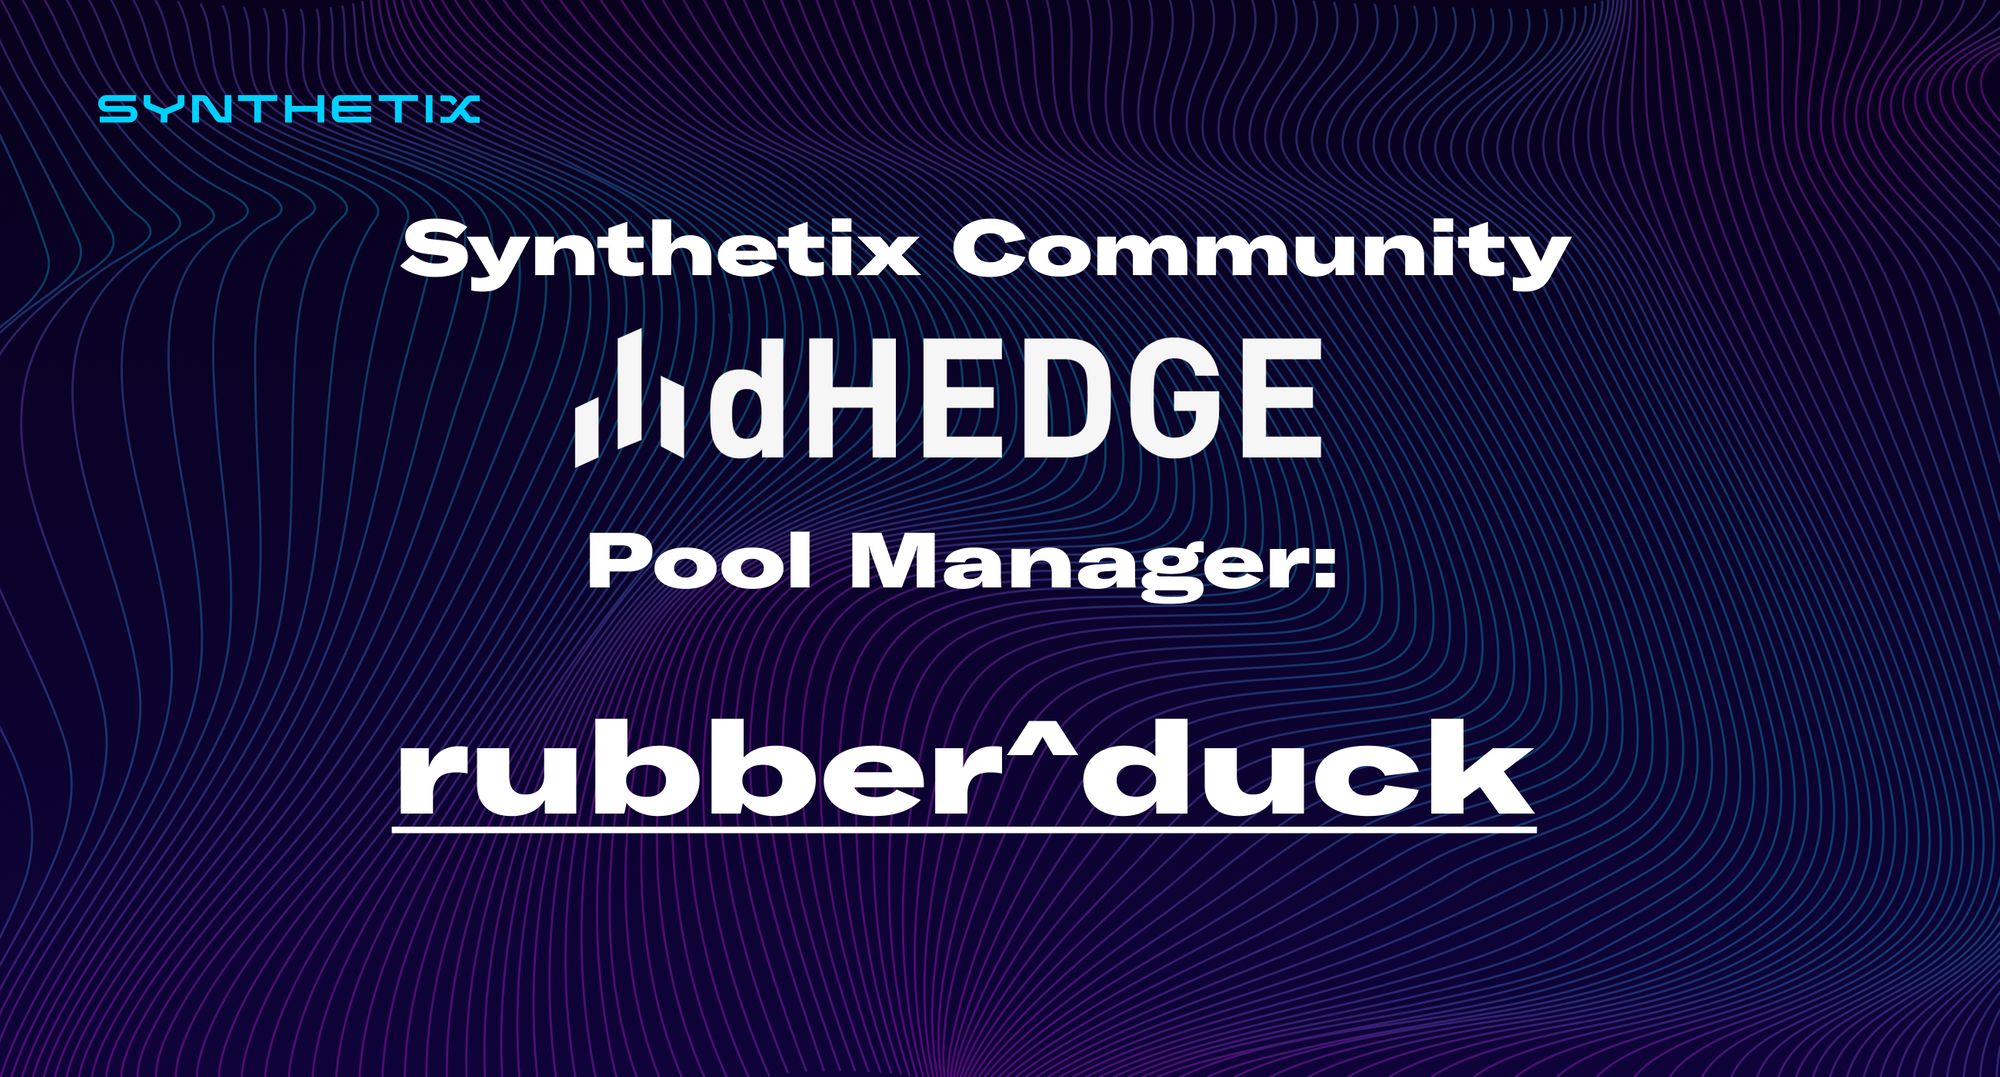 Introducing the Synthetix Community dHEDGE Pool manager: rubber^duck